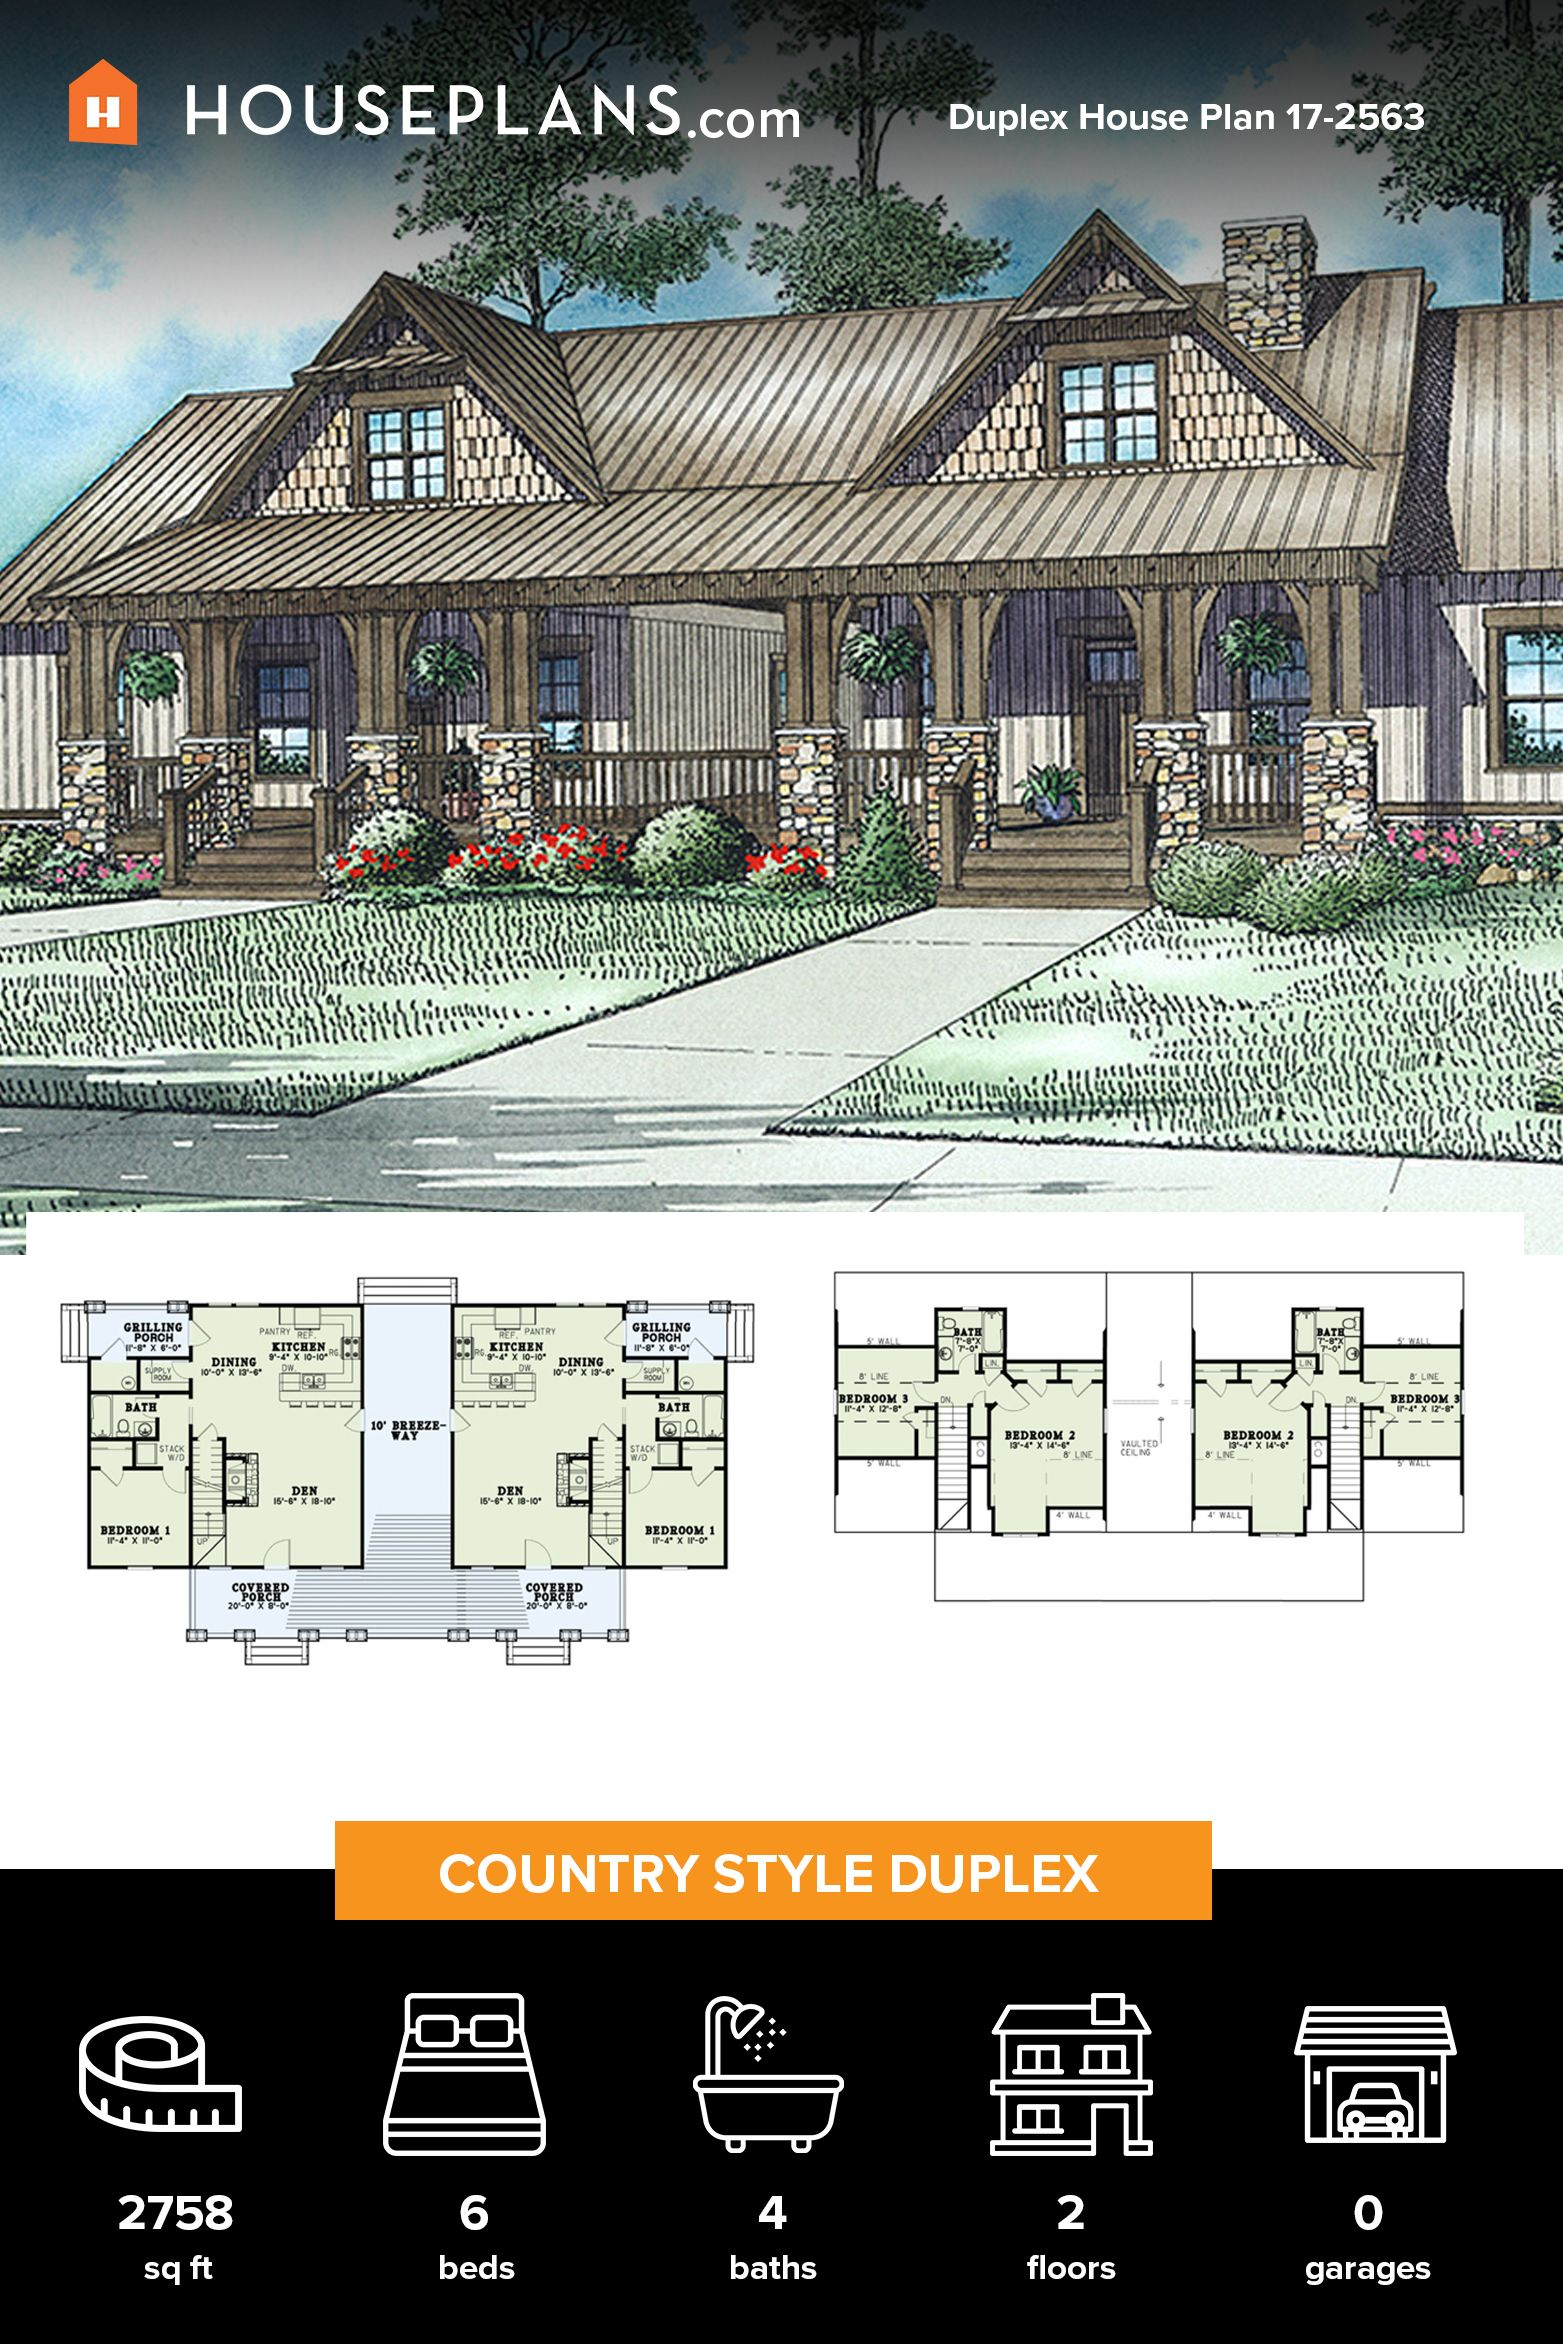 Country Style House Plan 6 Beds 4 Baths 2758 Sq Ft Plan 17 2563 In 2020 Country Style House Plans Duplex House Plans House Plans